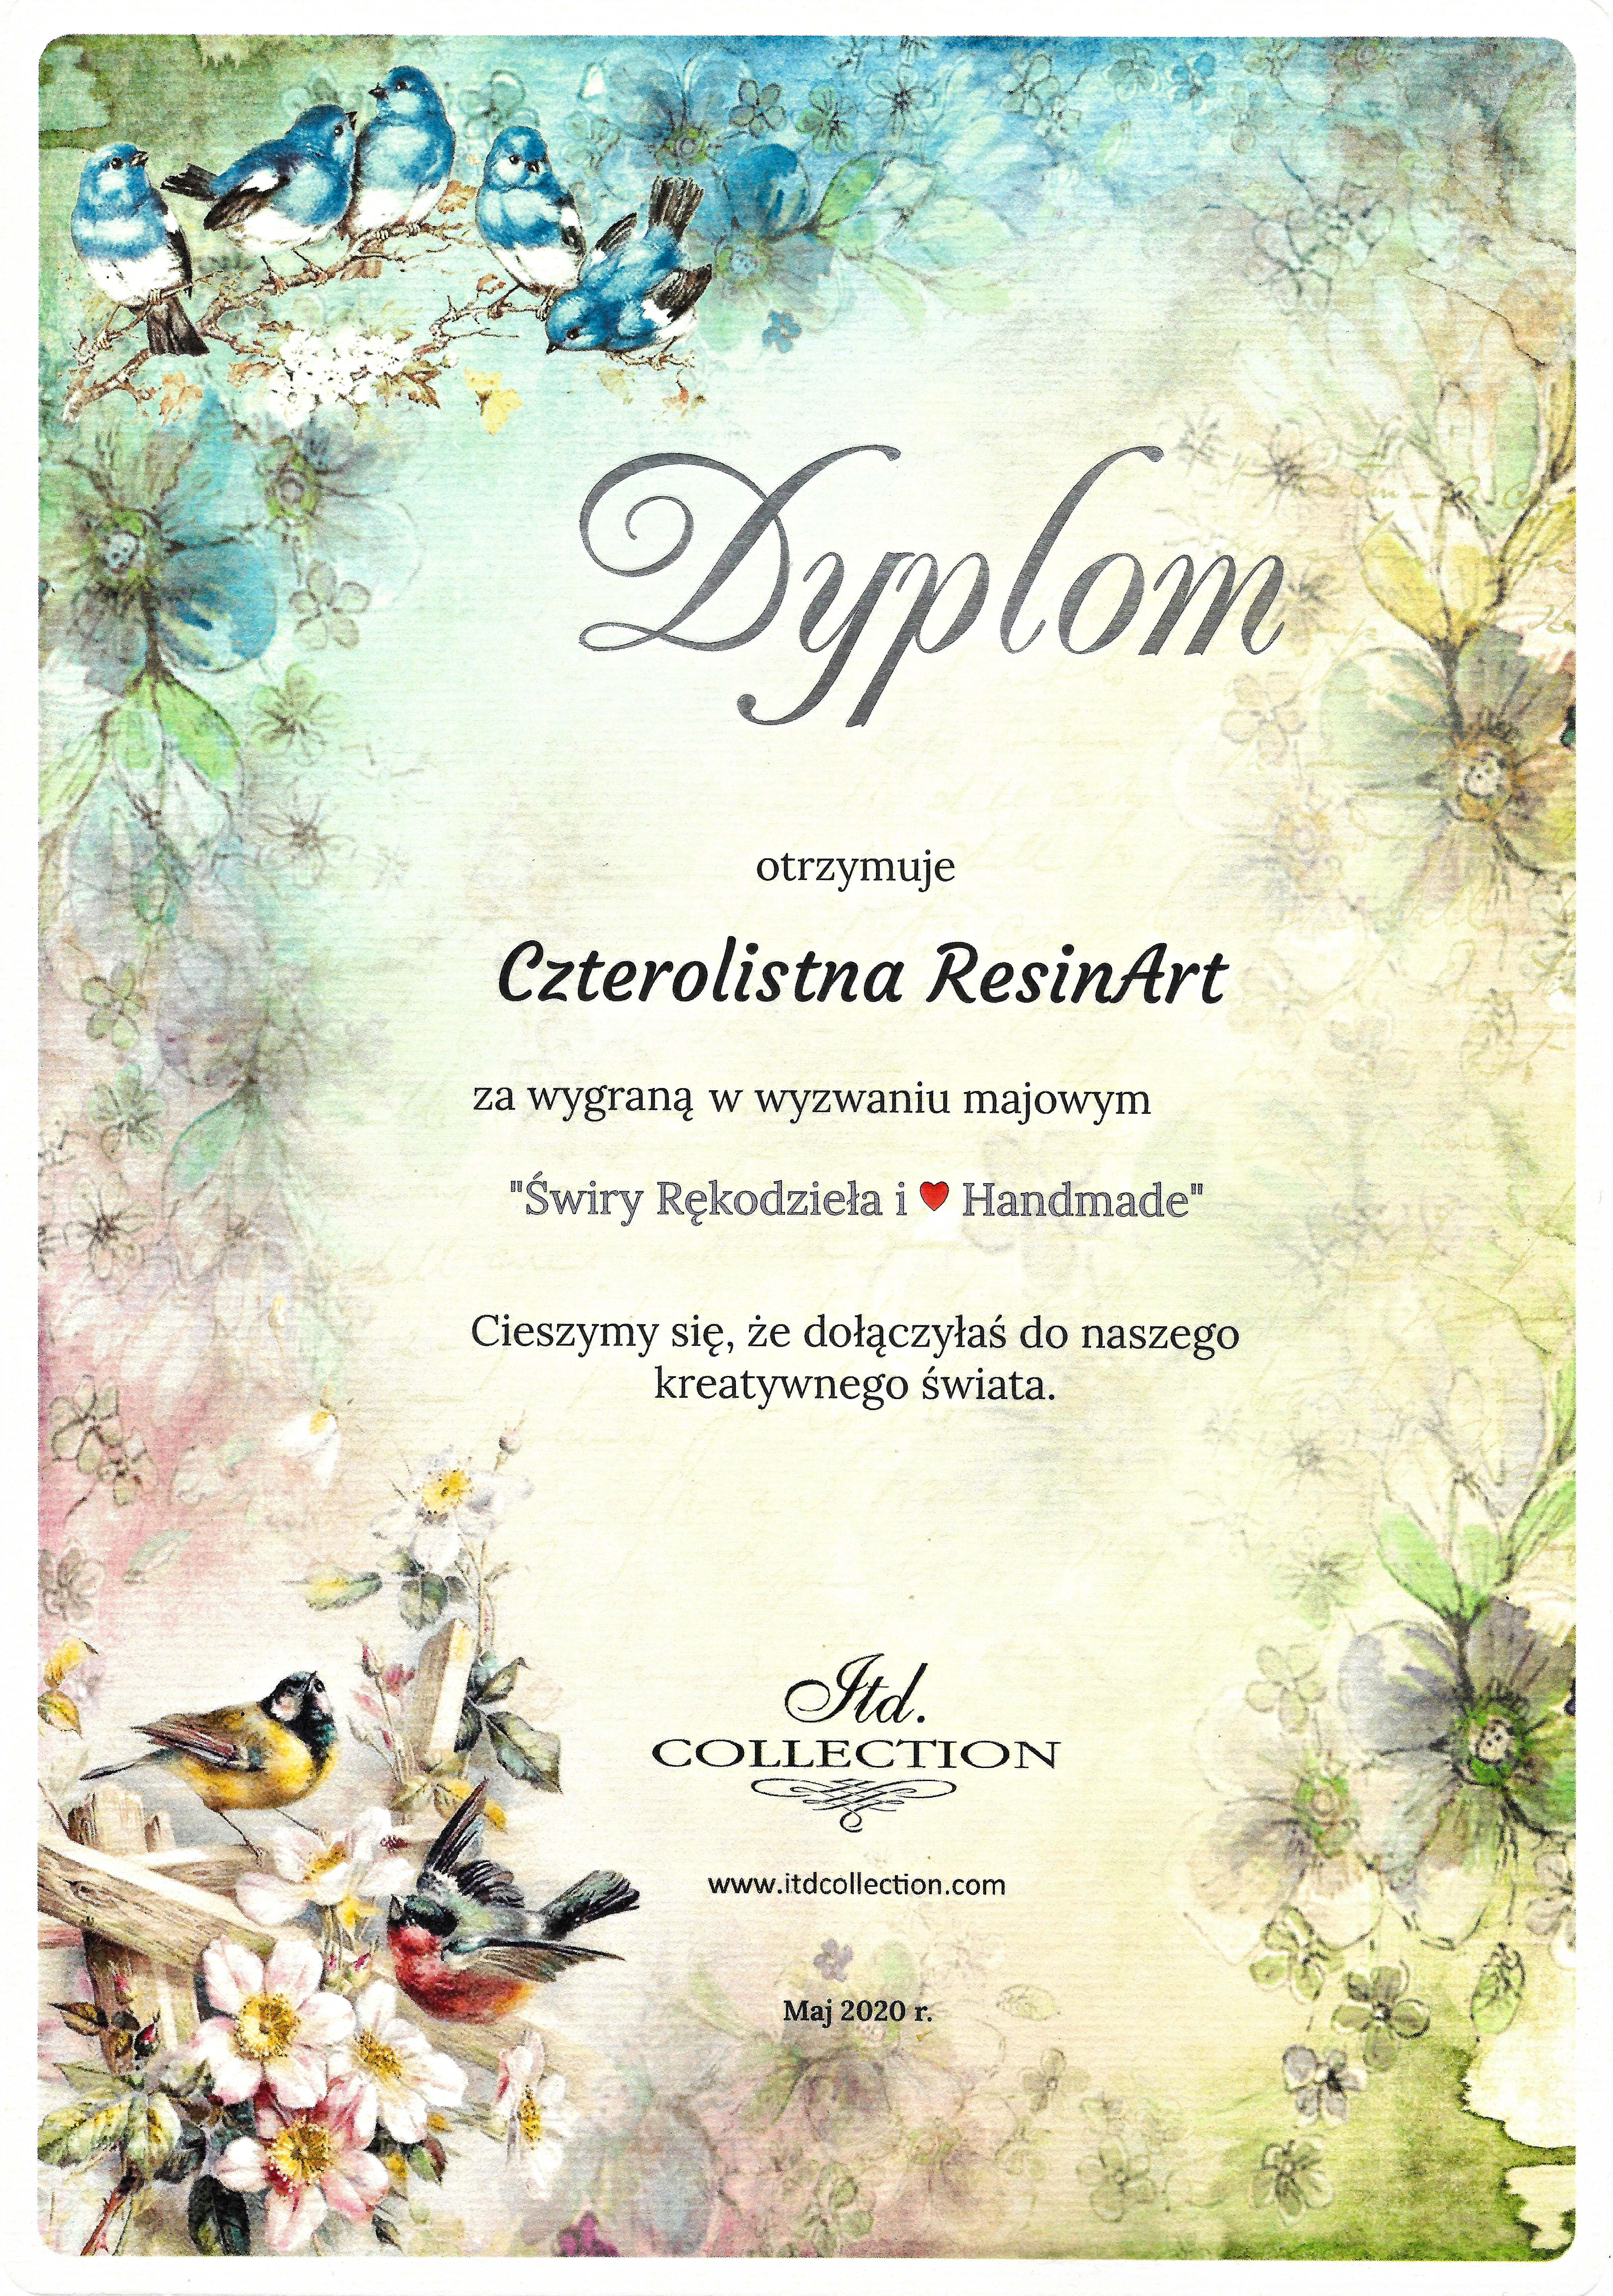 Dyplom od ITD COLLECTION